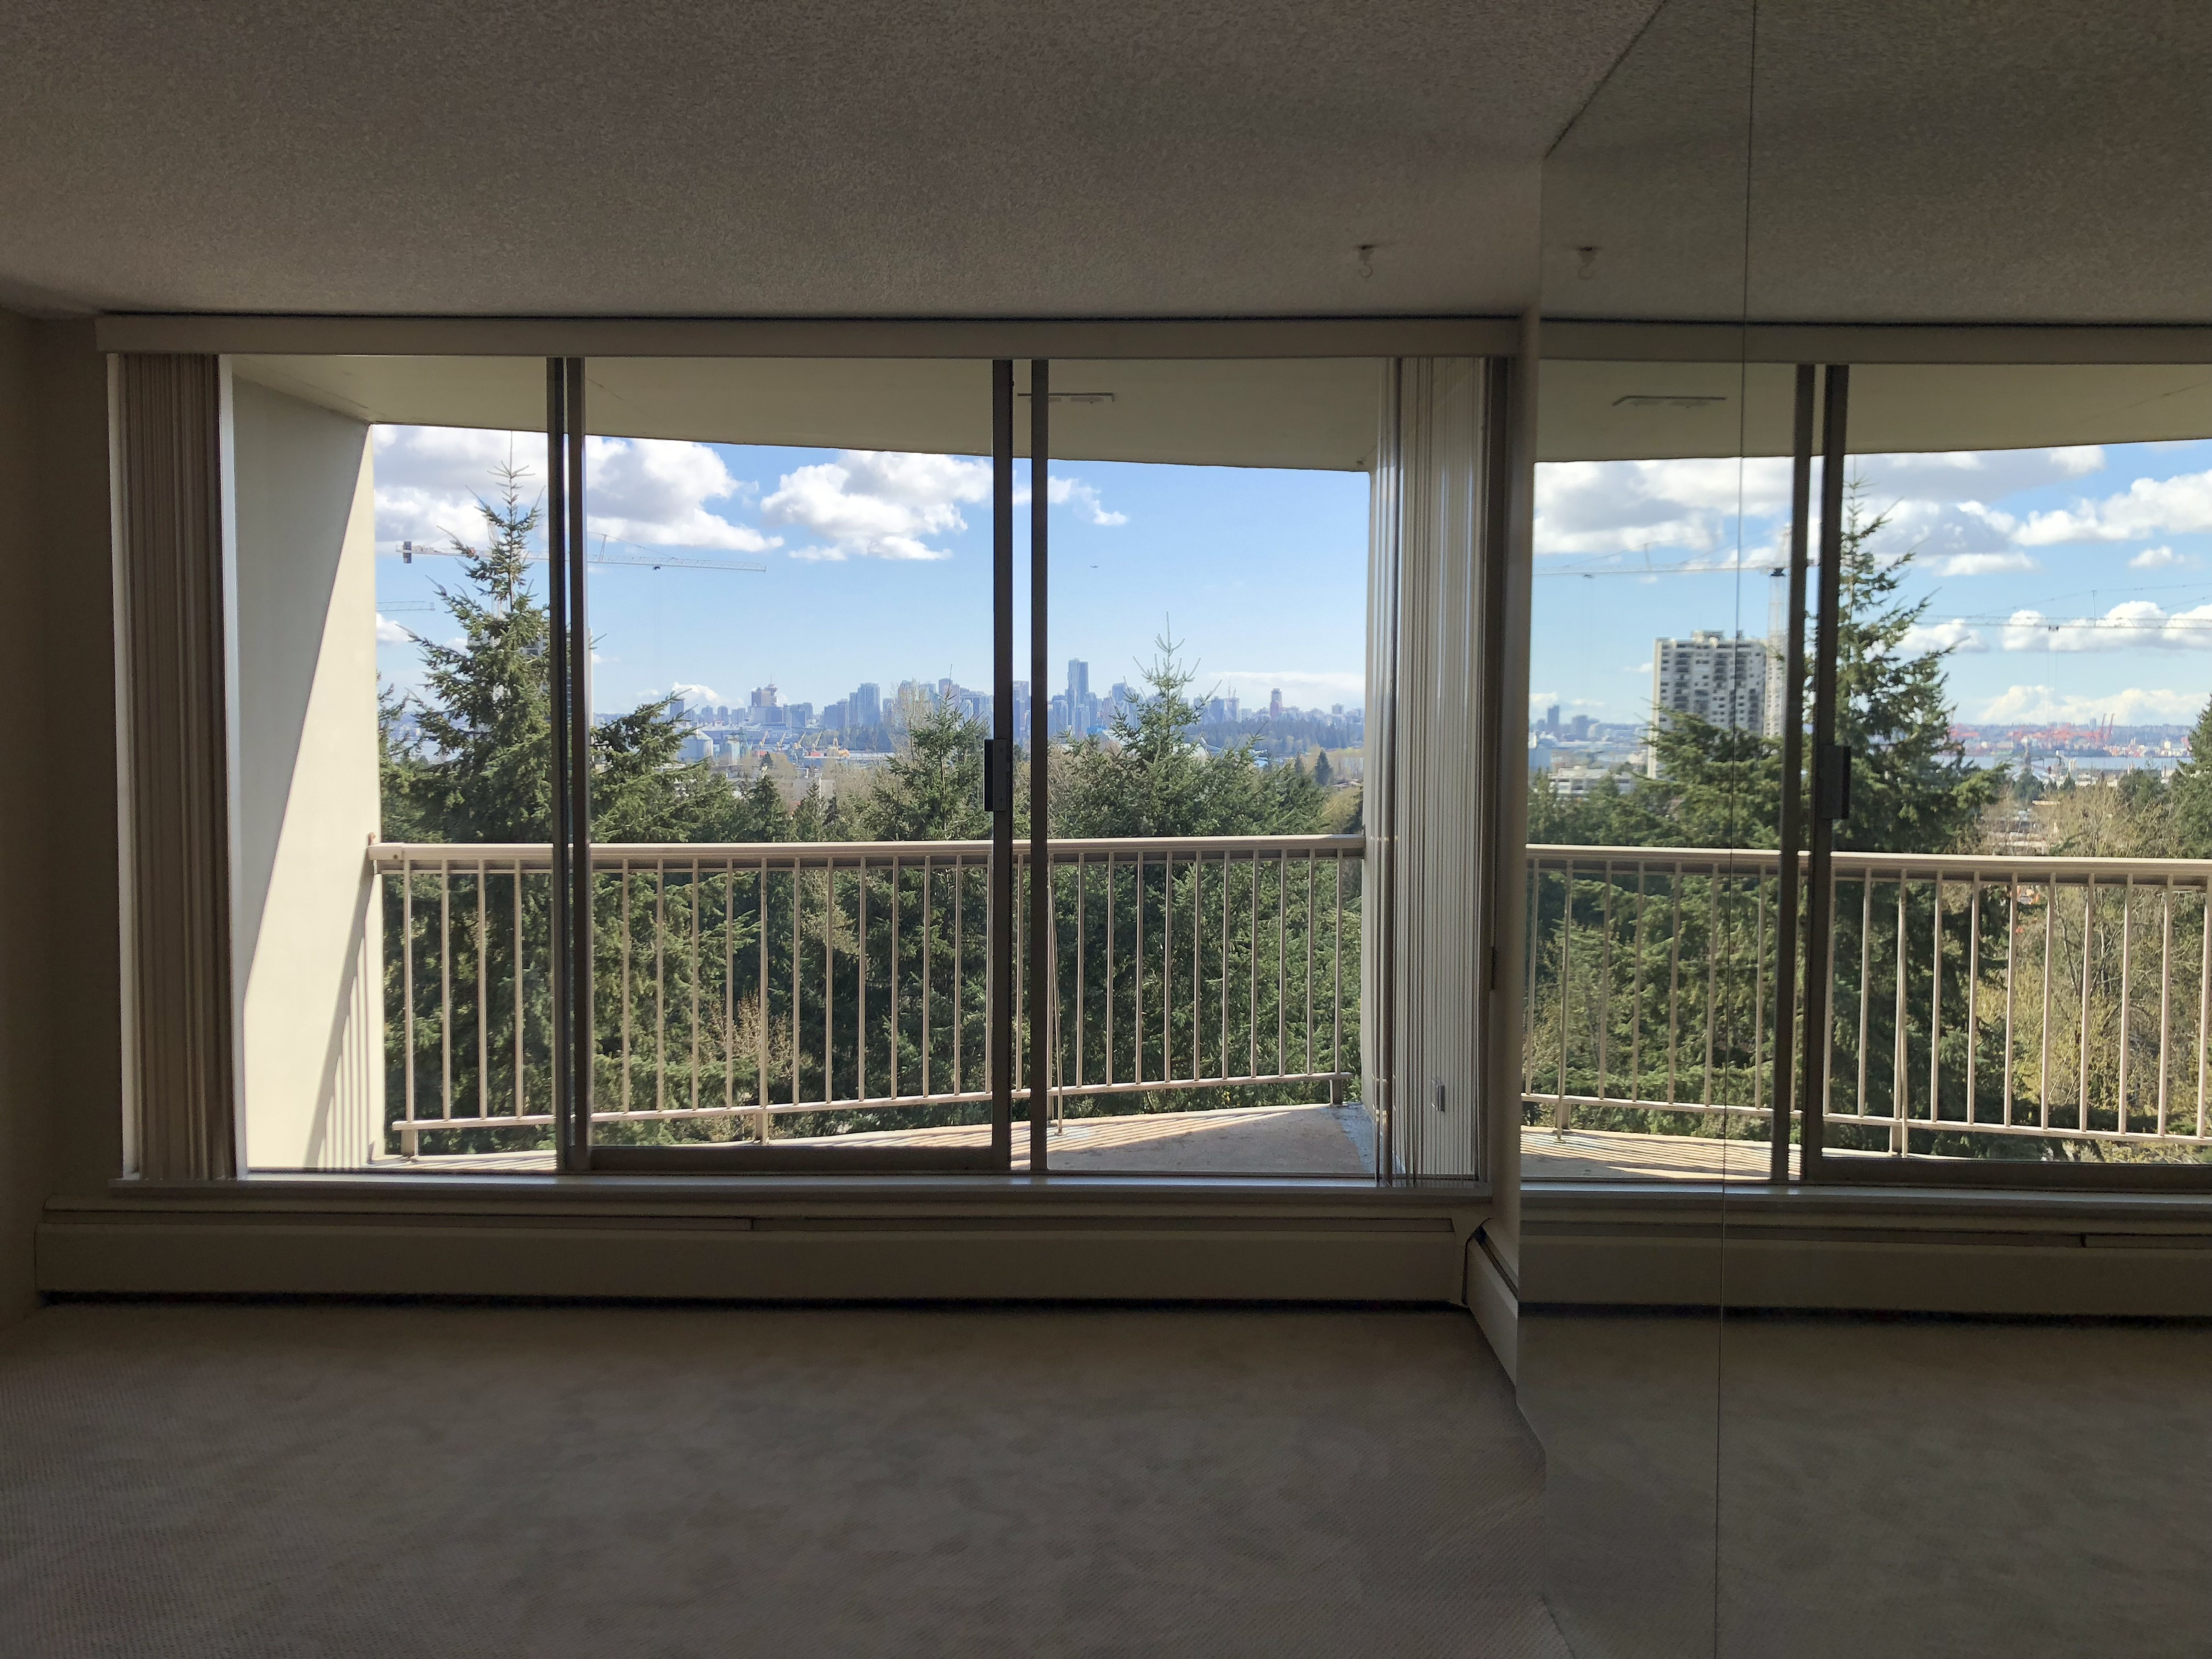 NEW Carpet & Paint, Large Unit, Woodcroft's BEST Views!